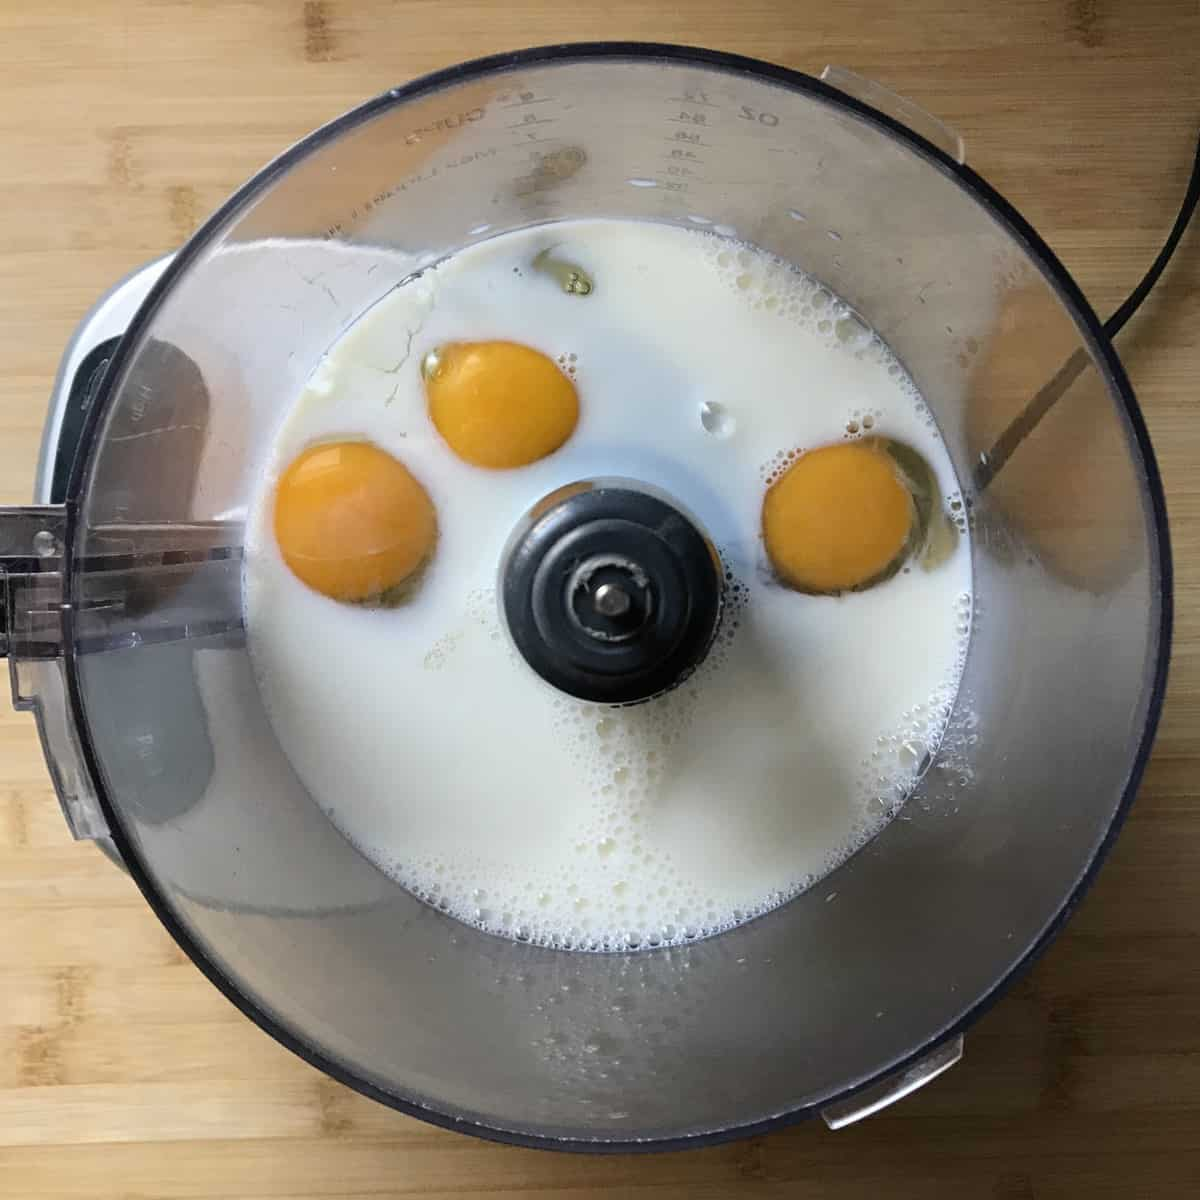 Making this sweet crepe recipe begins with eggs and milk in a food processor.